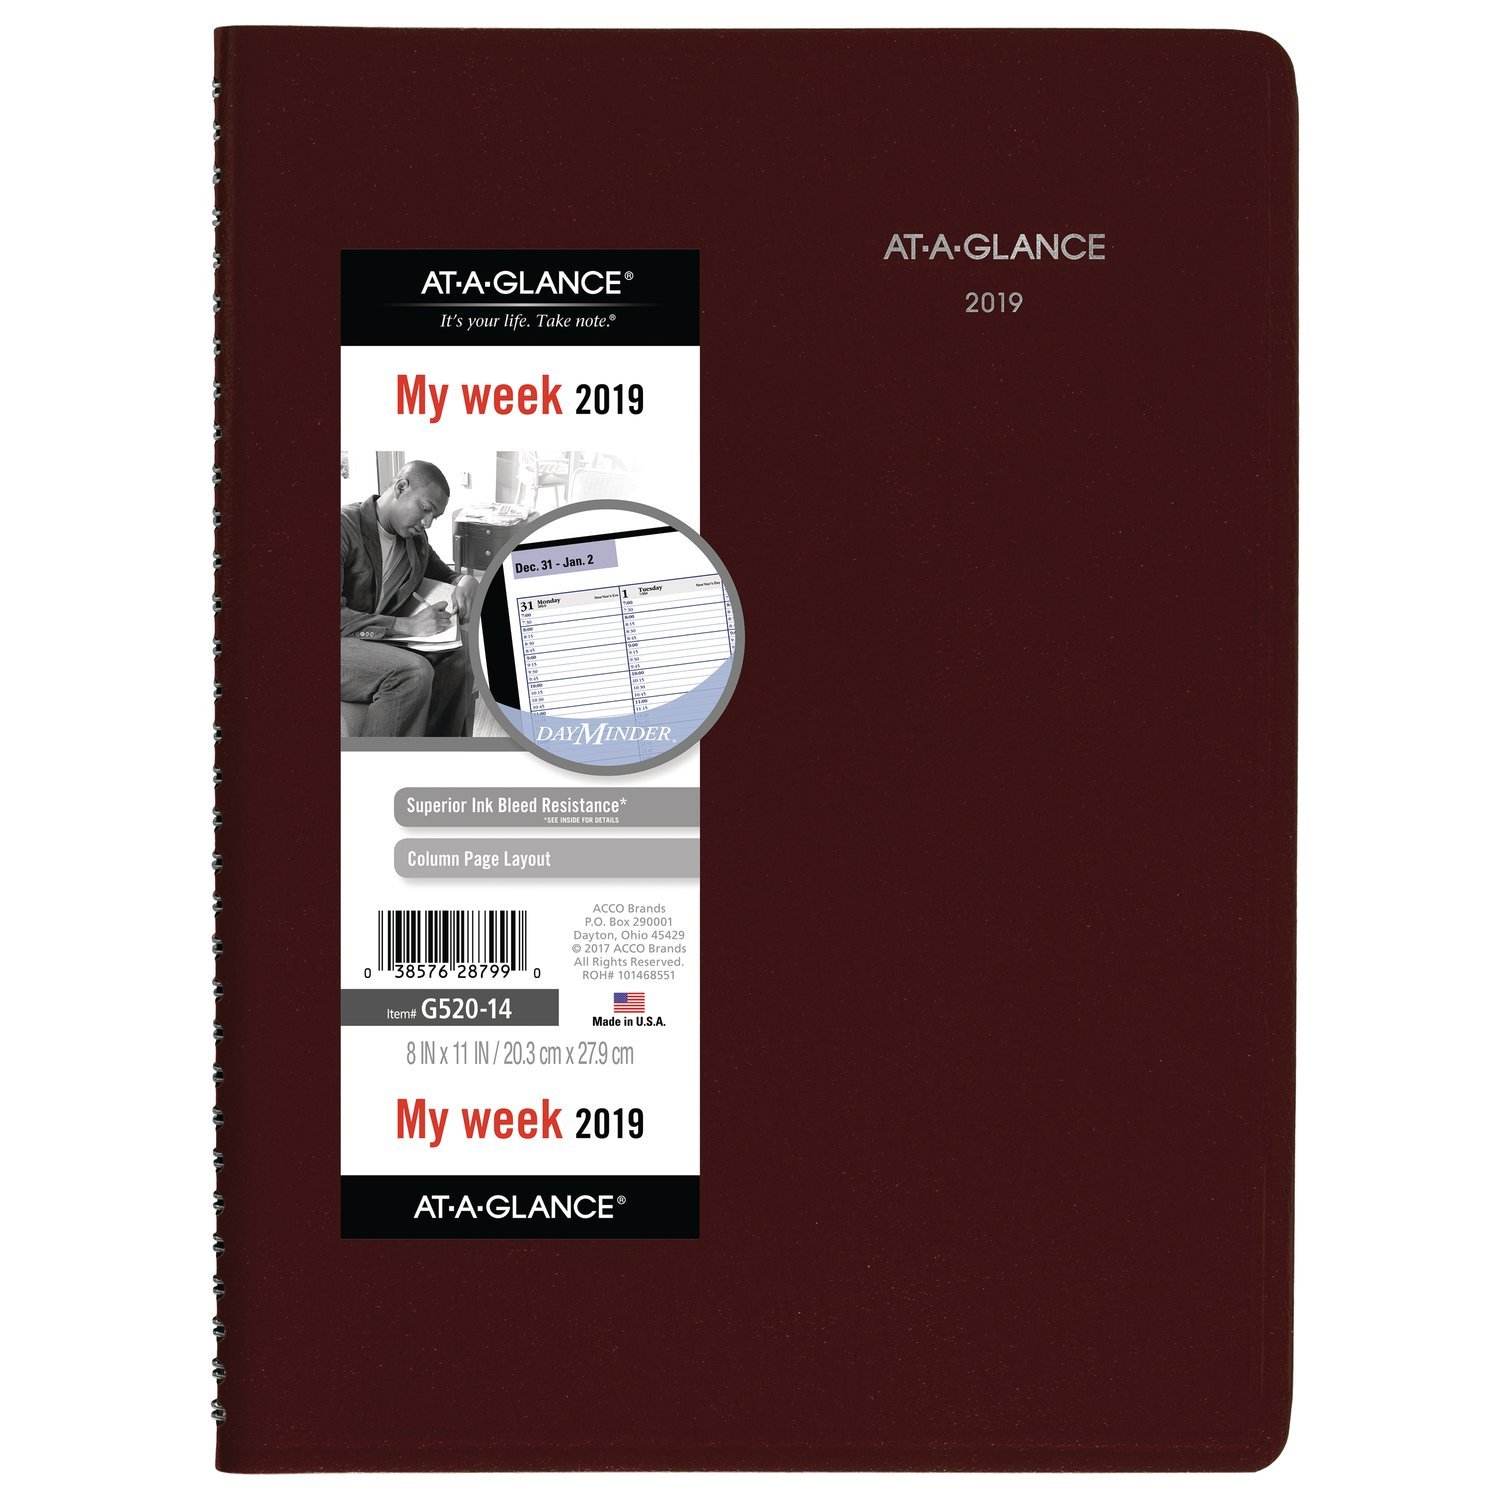 AT-A-GLANCE G52014-18 DayMinder Weekly Appointment Book / Planner, January 2019 - December 2019, 8'' x 11'', Burgundy (G52014) by At-A-Glance (Image #1)